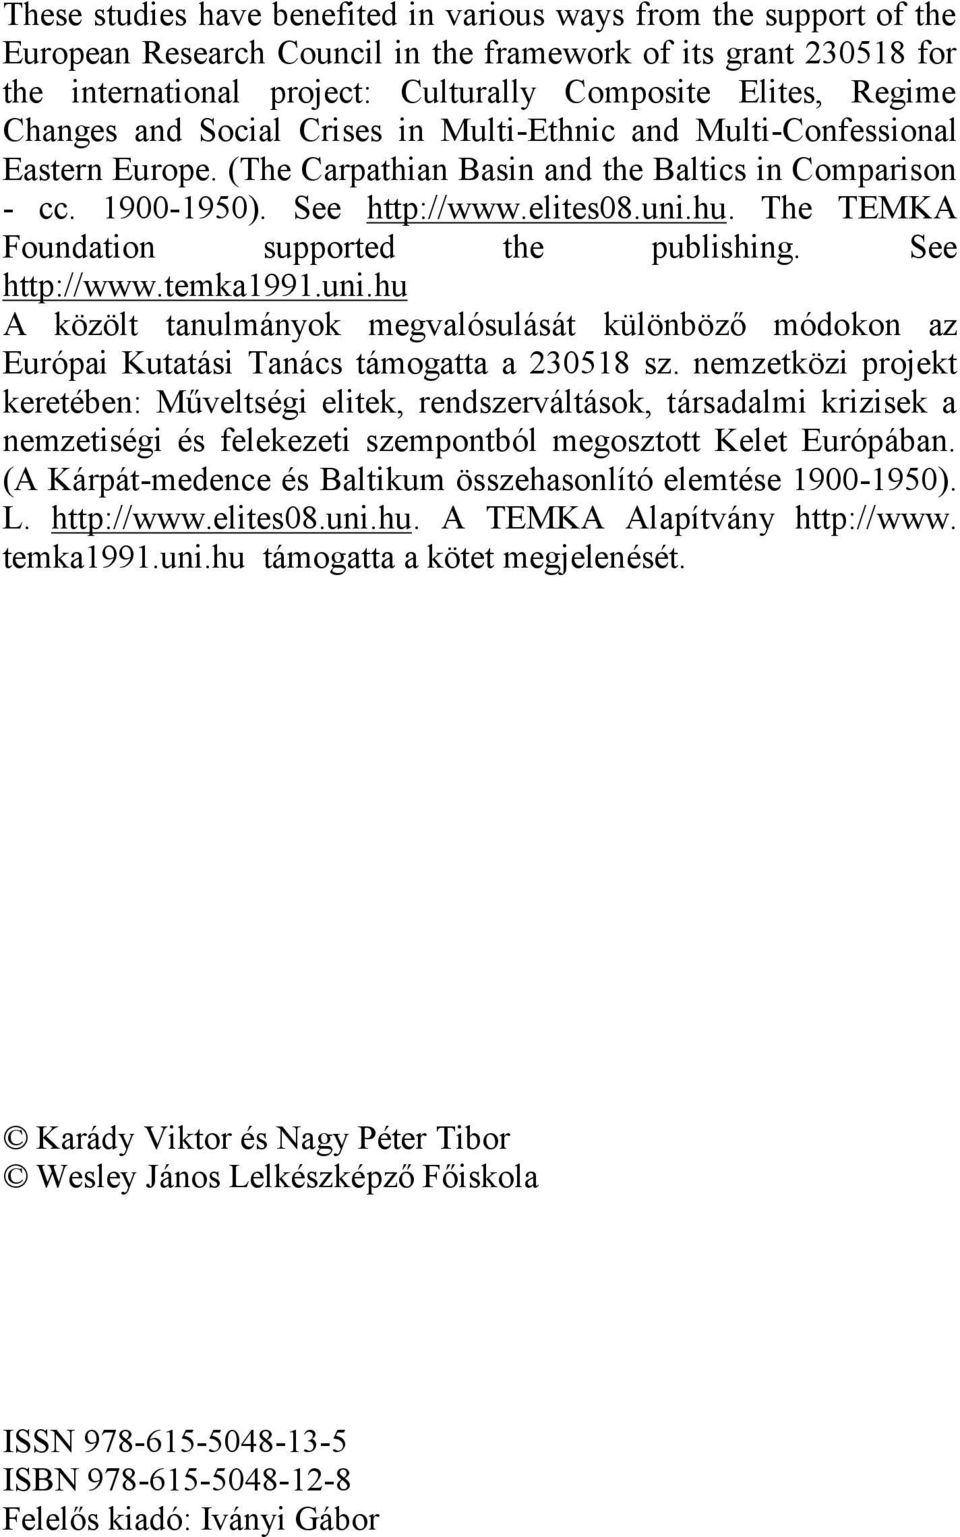 The TEMKA Foundation supported the publishing. See http://www.temka1991.uni.hu A közölt tanulmányok megvalósulását különböző módokon az Európai Kutatási Tanács támogatta a 230518 sz.